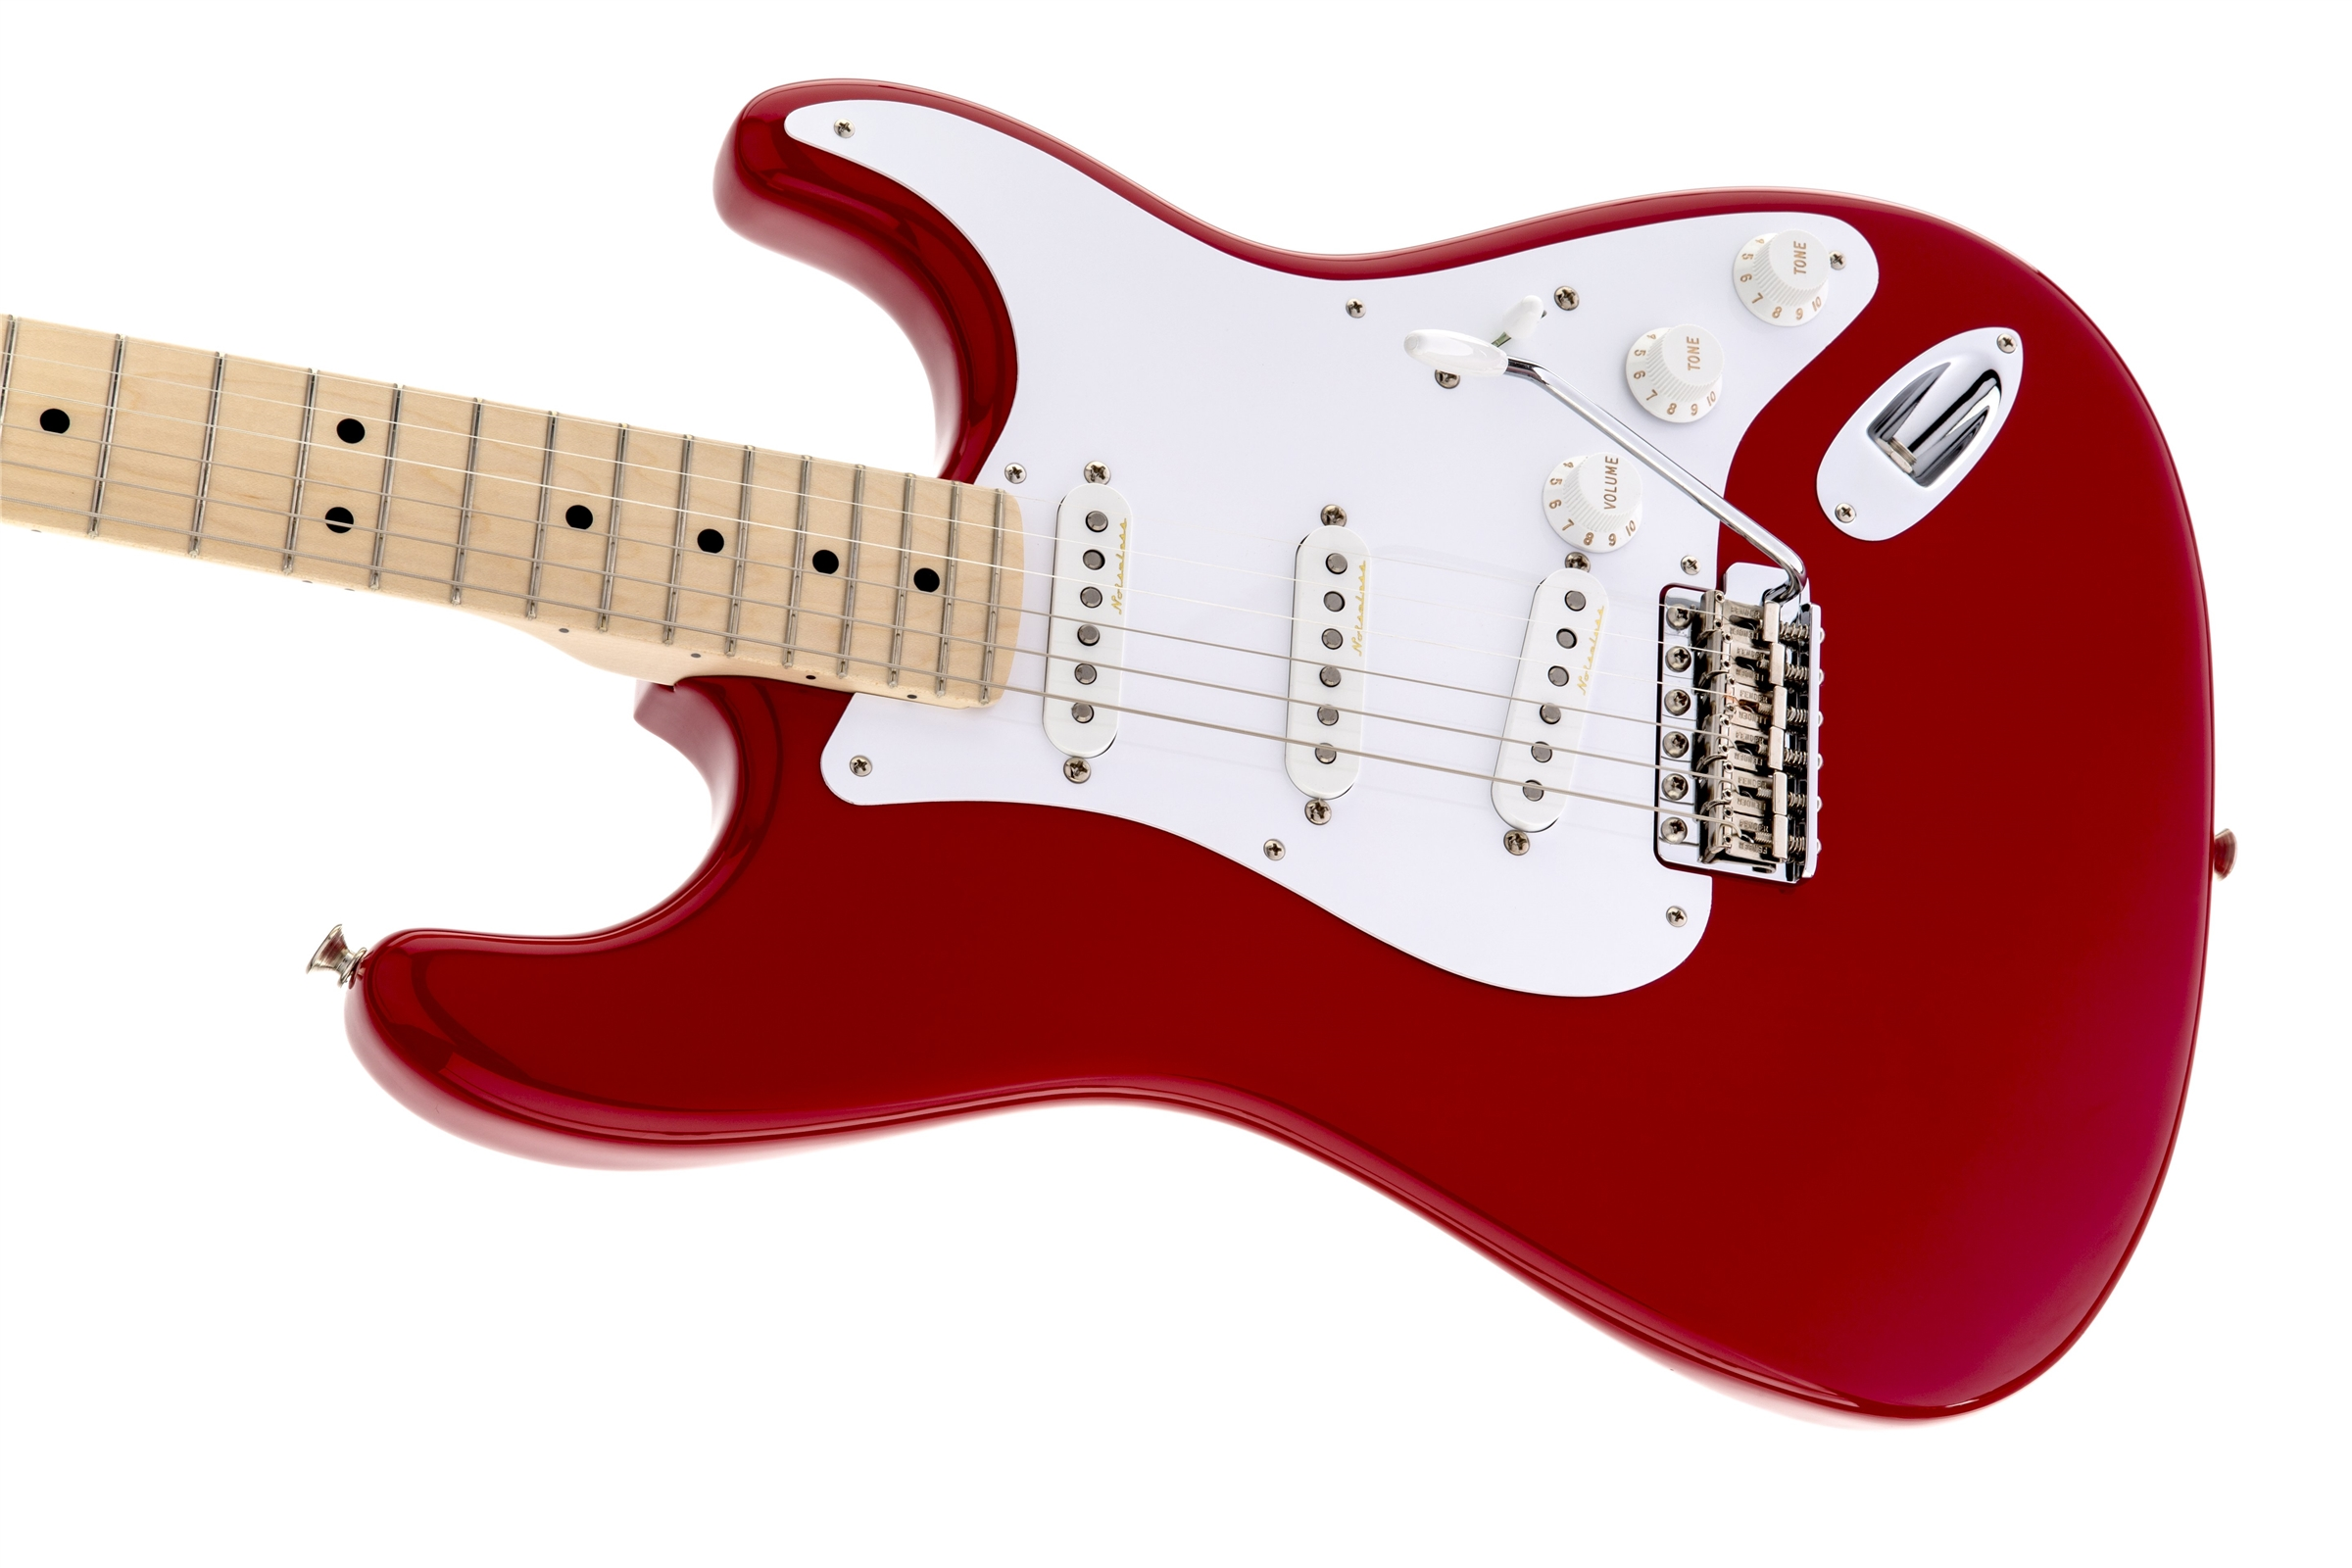 Fender Eric Clapton Stratocaster® Artist Series Torino Red Maple Fingerboard Electric Guitar